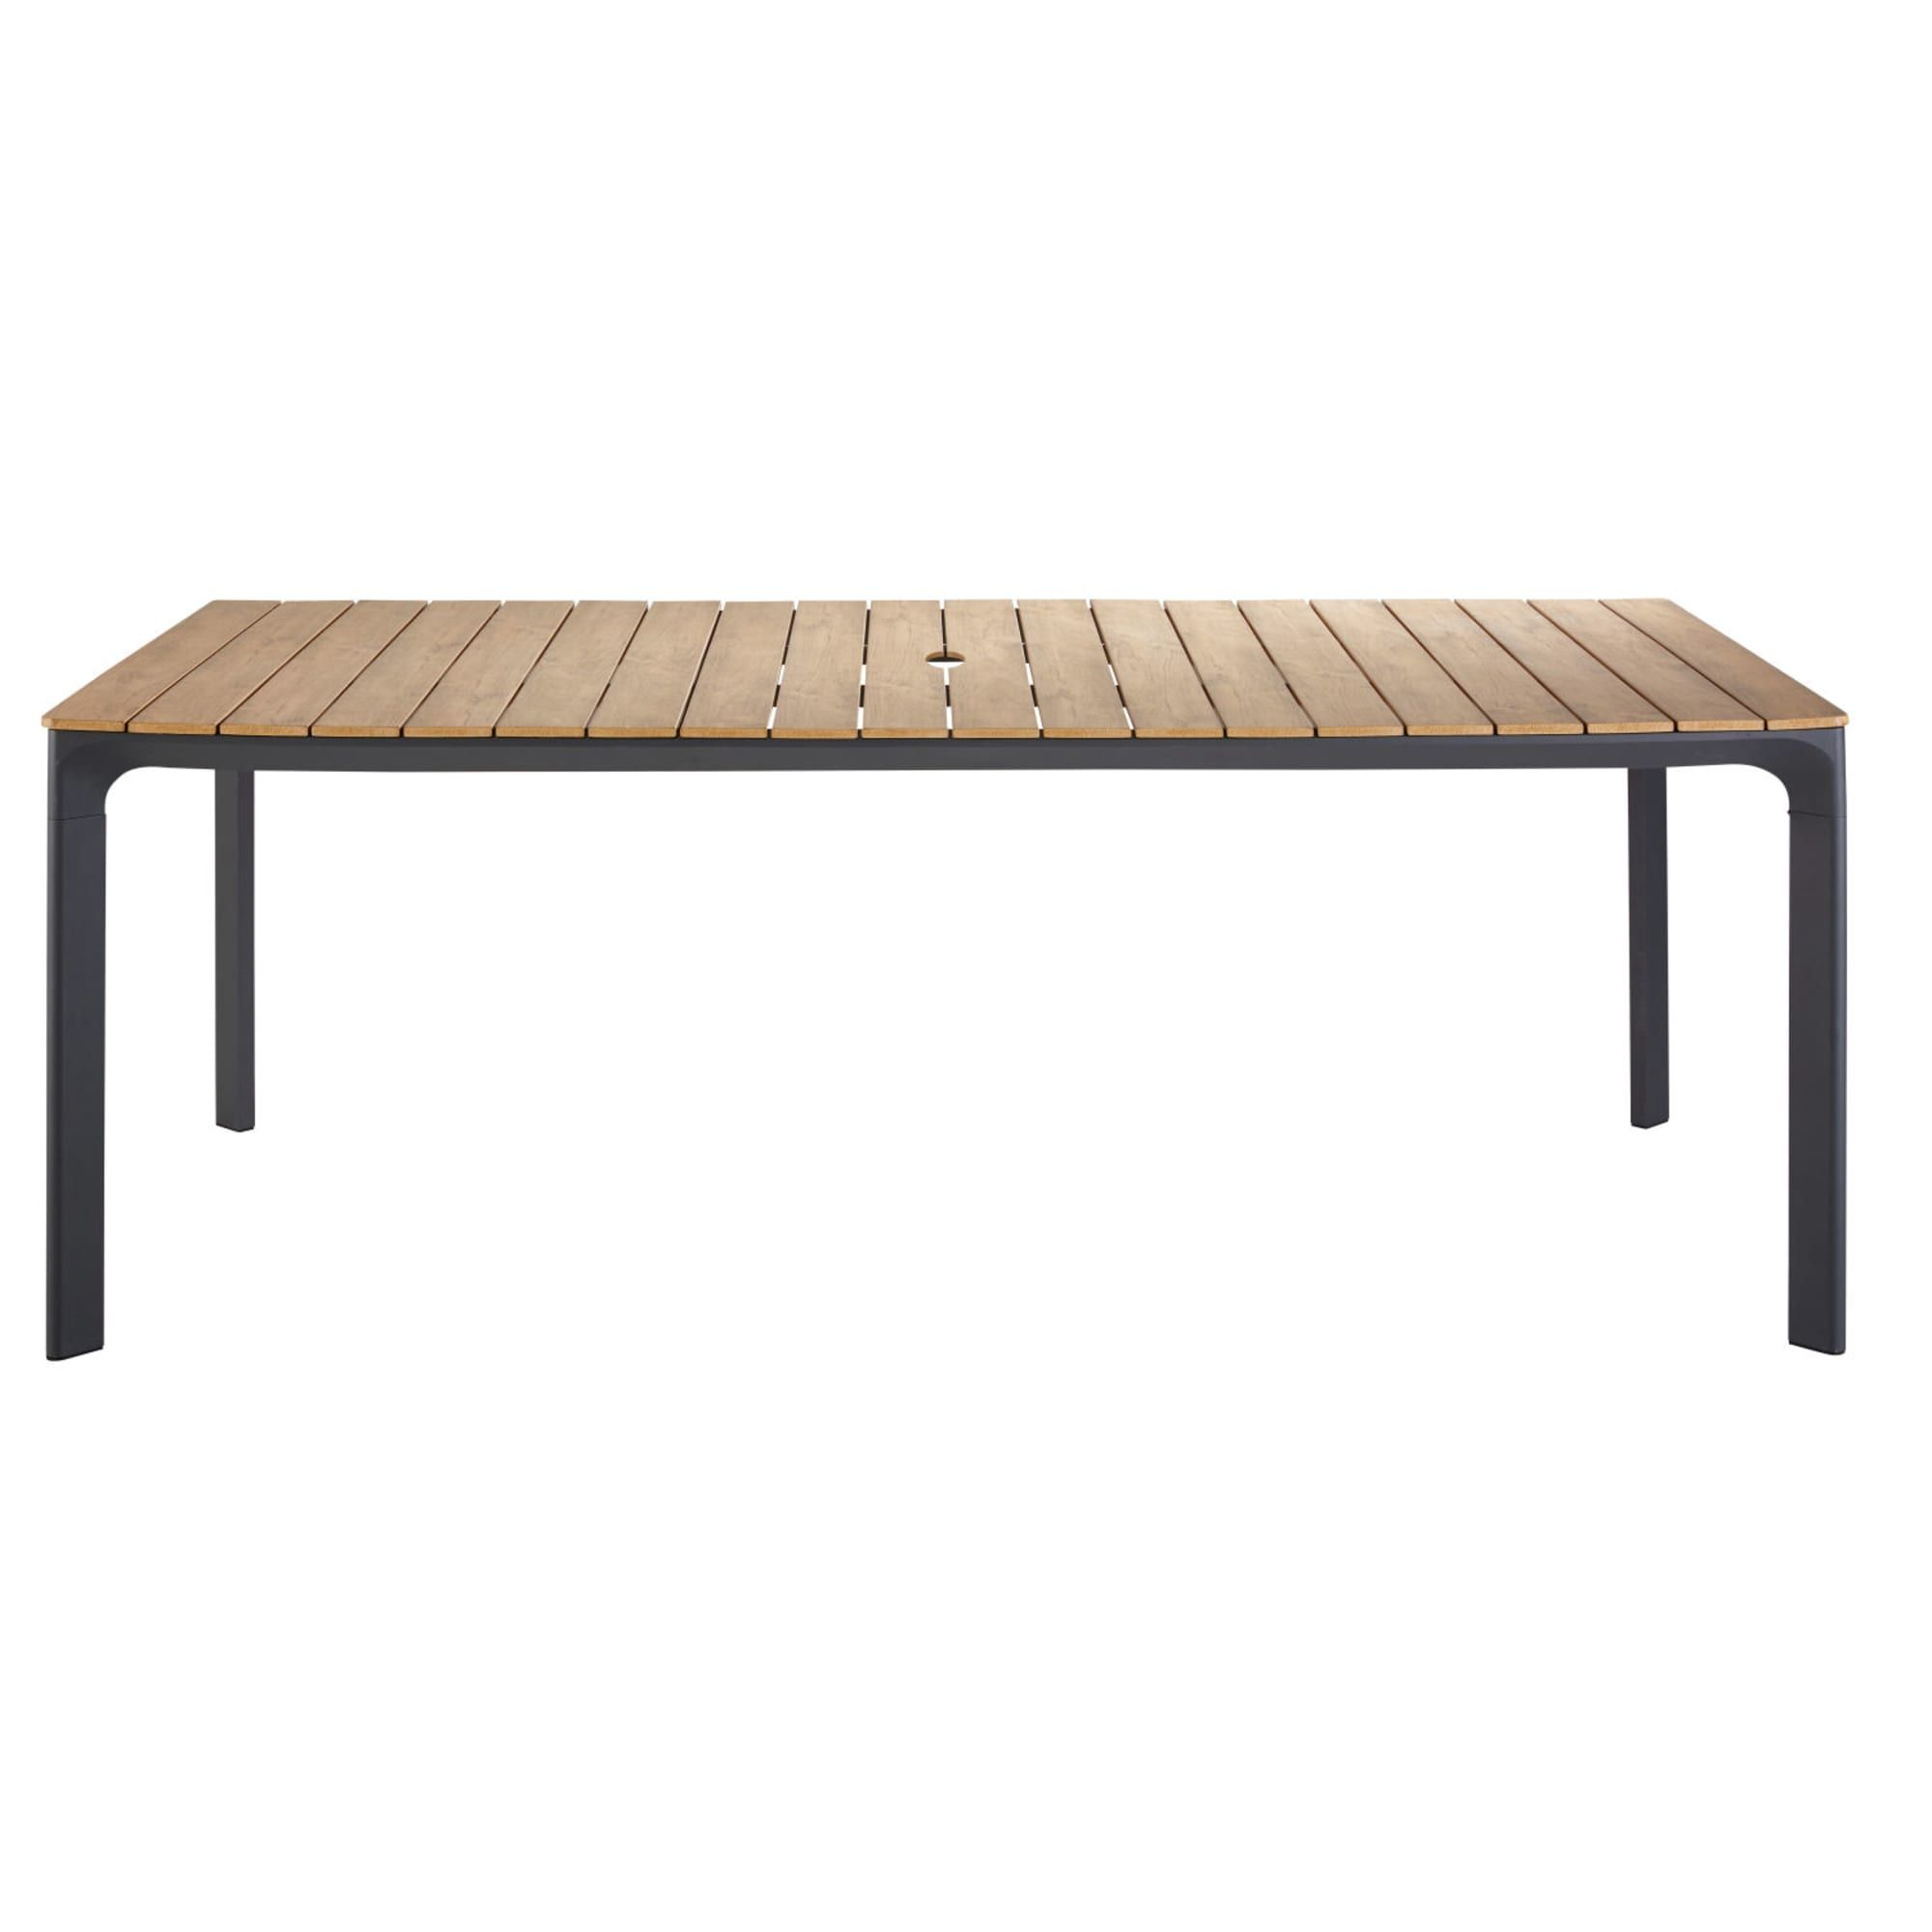 6-8 Seater Aluminium And Composite Garden Table L200 ... tout Table De Jardin Aluminium Et Composite